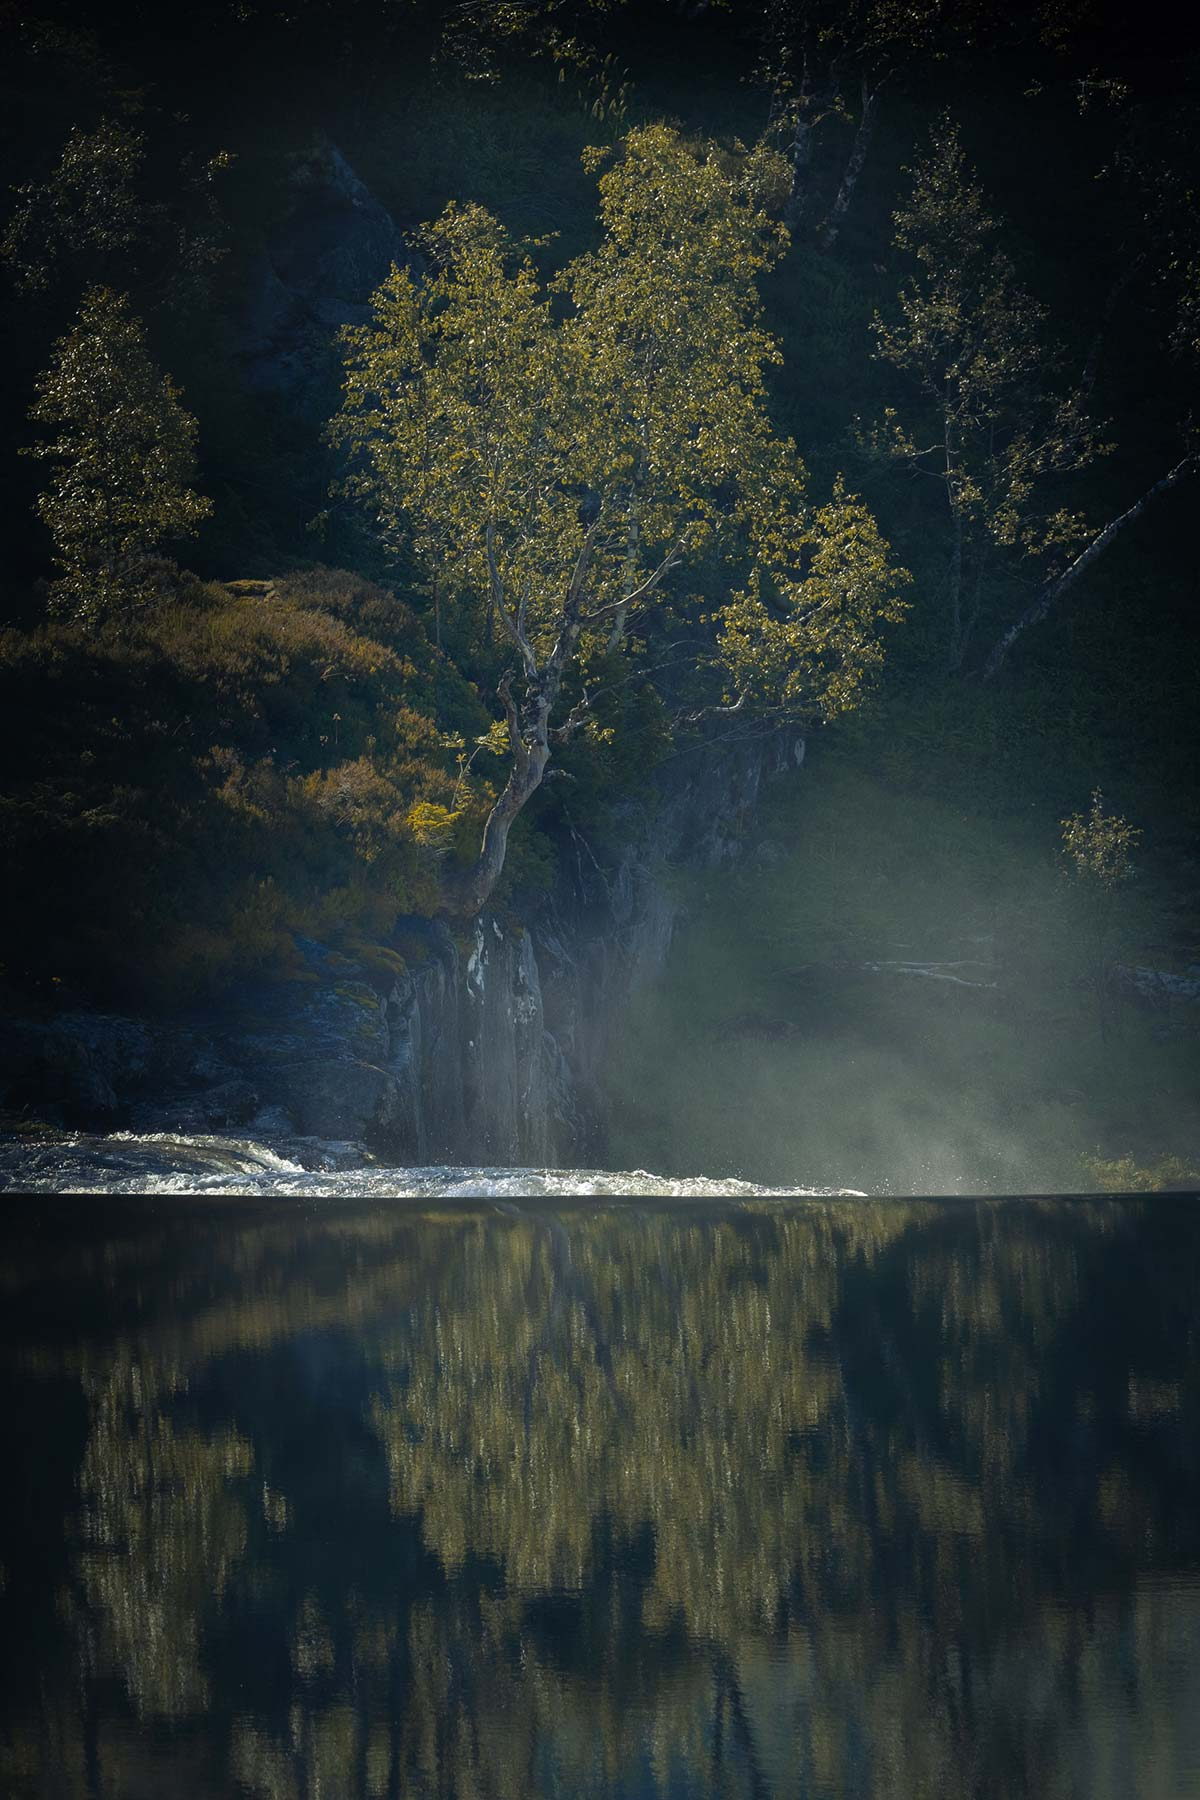 A lonesome tree reflected into the crystal clear water